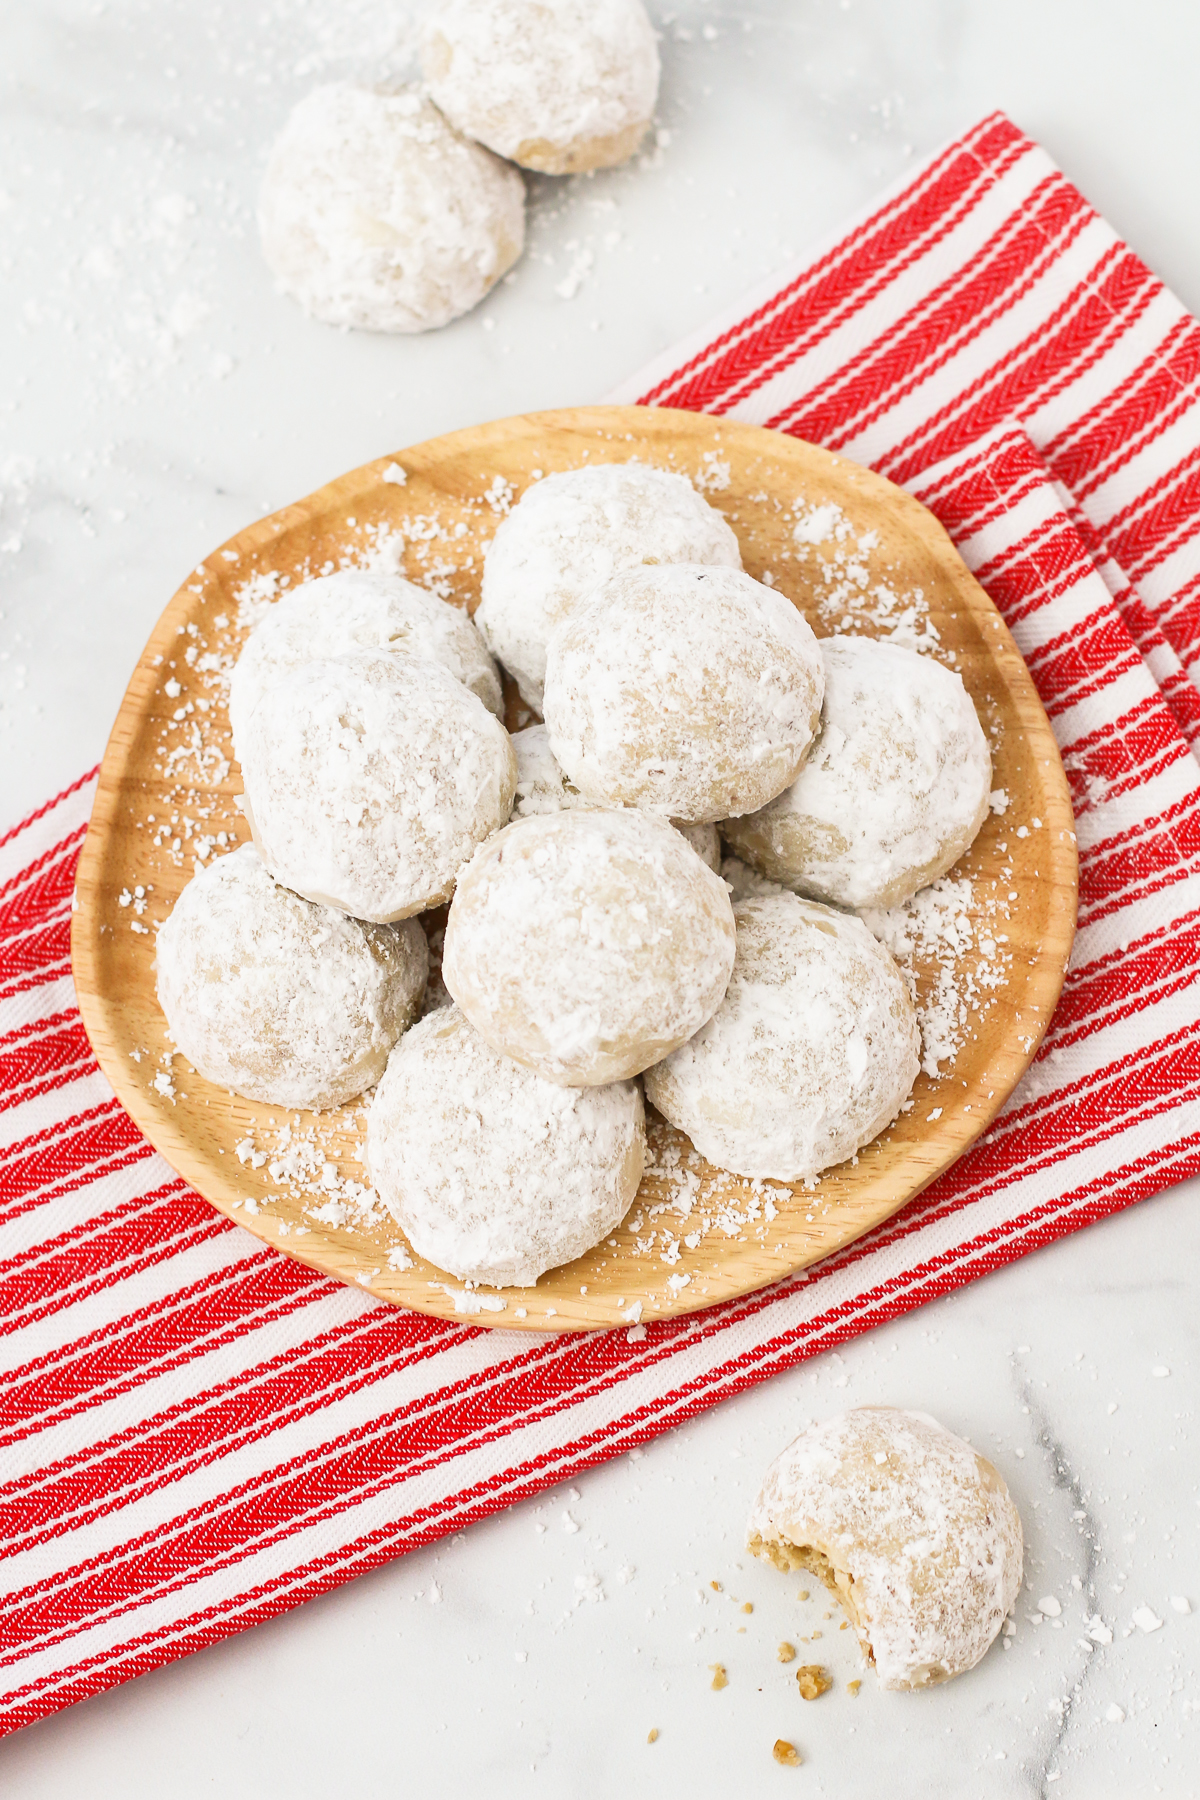 Gluten Free Vegan Snowball Cookies. Also known as Russian tea cakes, these powdered sugar coated cookies are made with flavorful toasted walnuts. A buttery, simple holiday cookie!